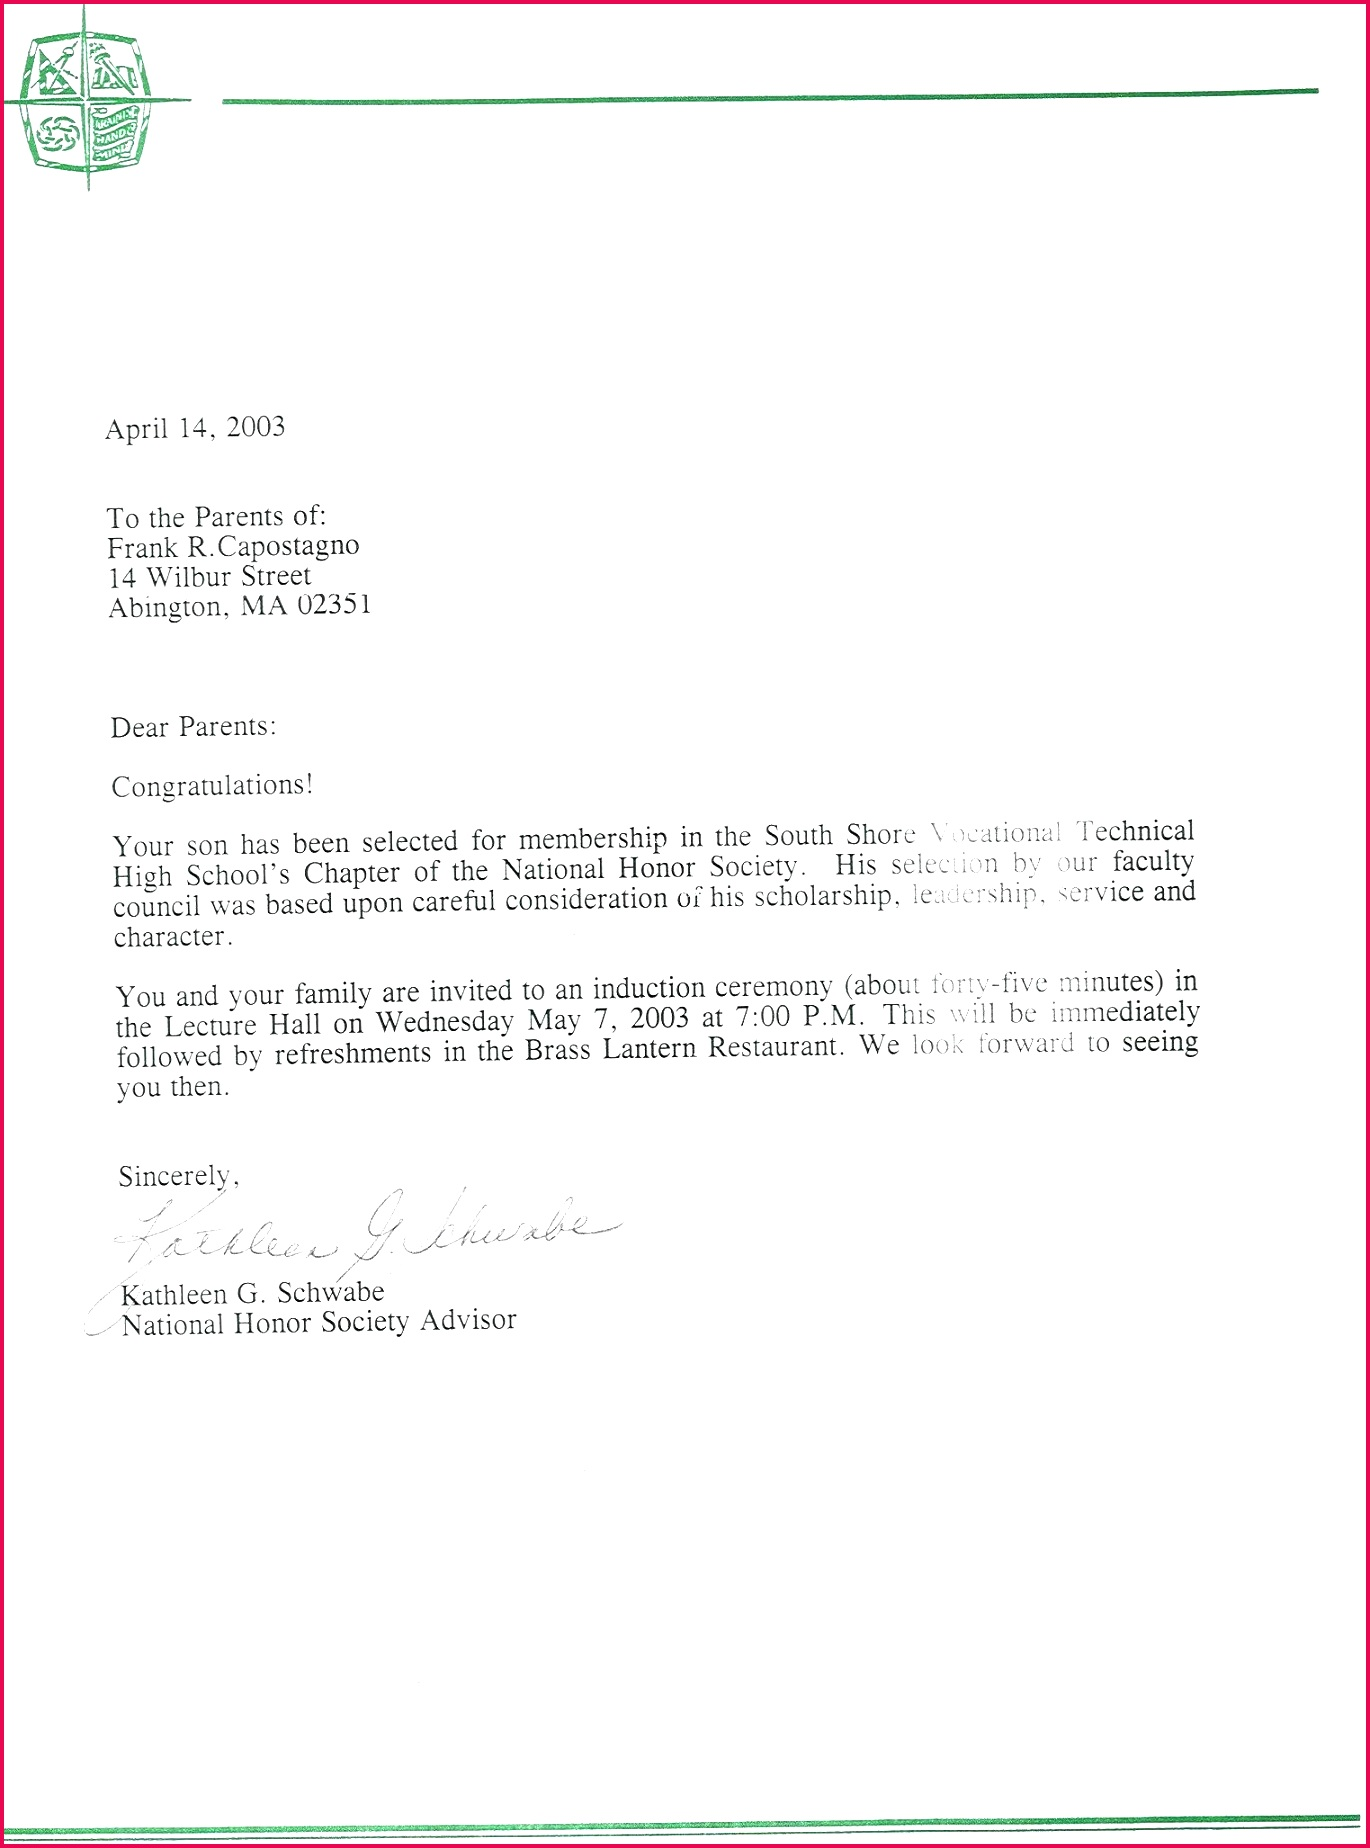 nhs letter re mendation template unique national honor society of nhs letter of re mendation template 1